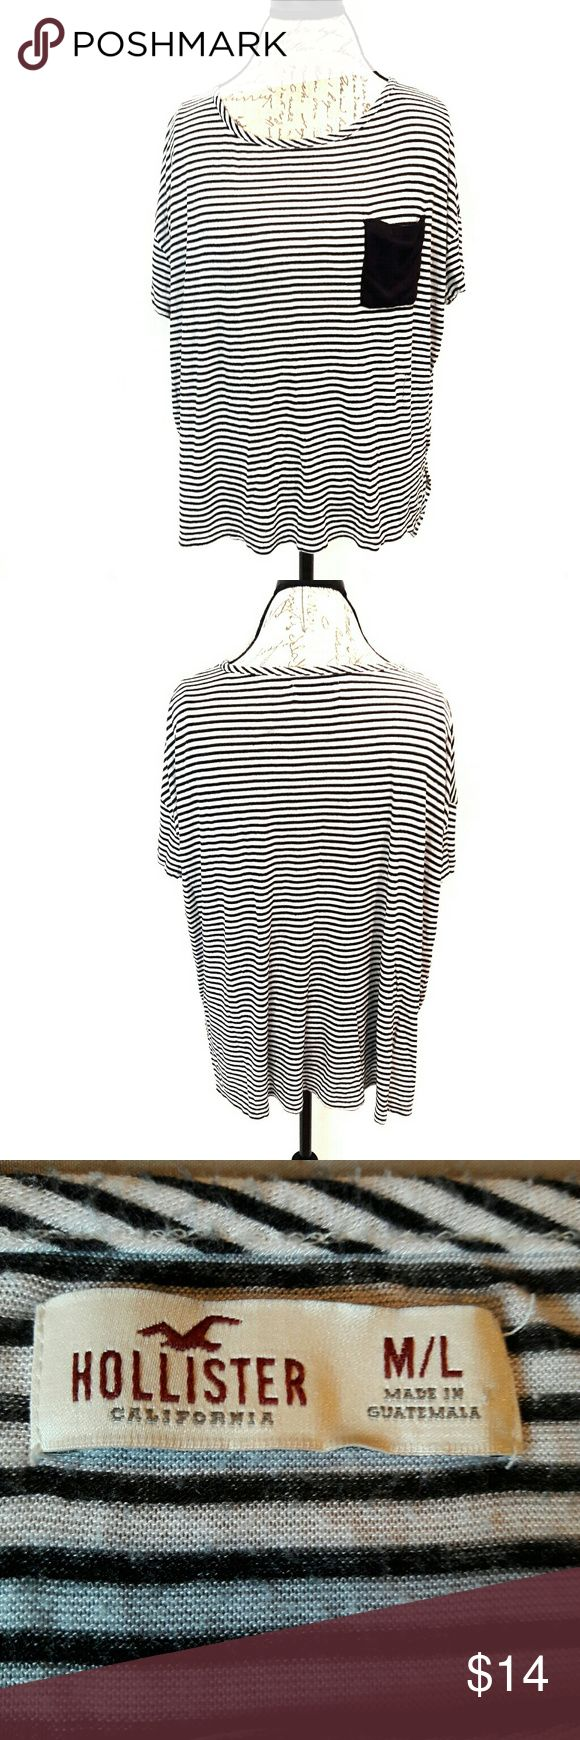 hollister ⏺ slouchy top In great condition! Very cute and comfortable hi low striped top. Has pocket on the chest. Black and white stripes. No material tag. Very soft material. Bust and length Measurements provided in pics above. This fit a medium or a large. Very roomy. From a smoke and pet free home. Fast shipping! Office - Vacation - Wedding - Fun - Dress up - date night - cruise - spring - summer *IF YOU LIKE MY ITEMS, please FOLLOW ME to see NEW ARRIVALS that are added weekly…